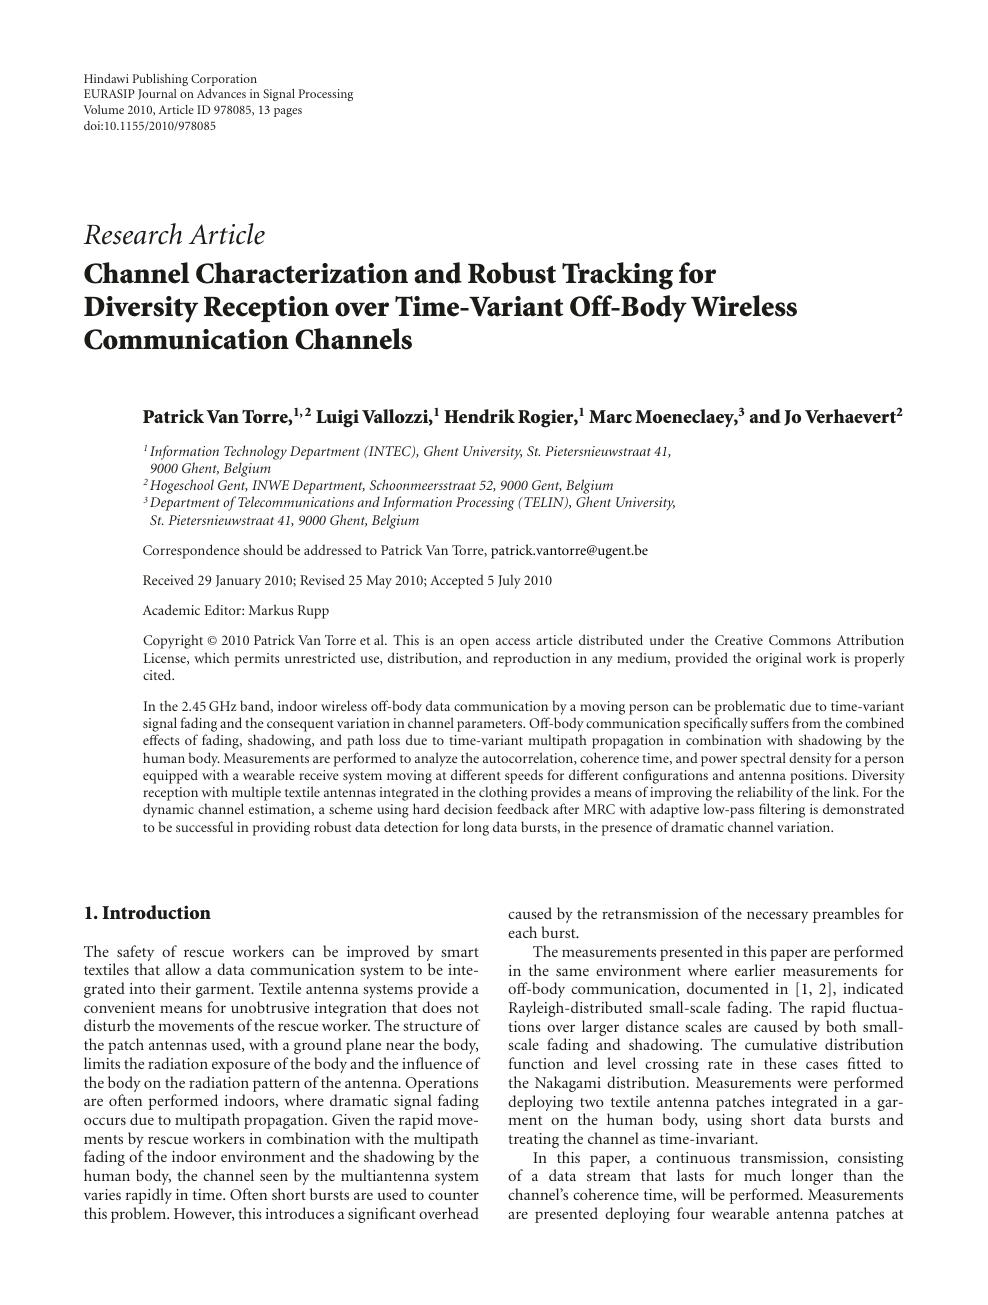 research papers on wireless communication